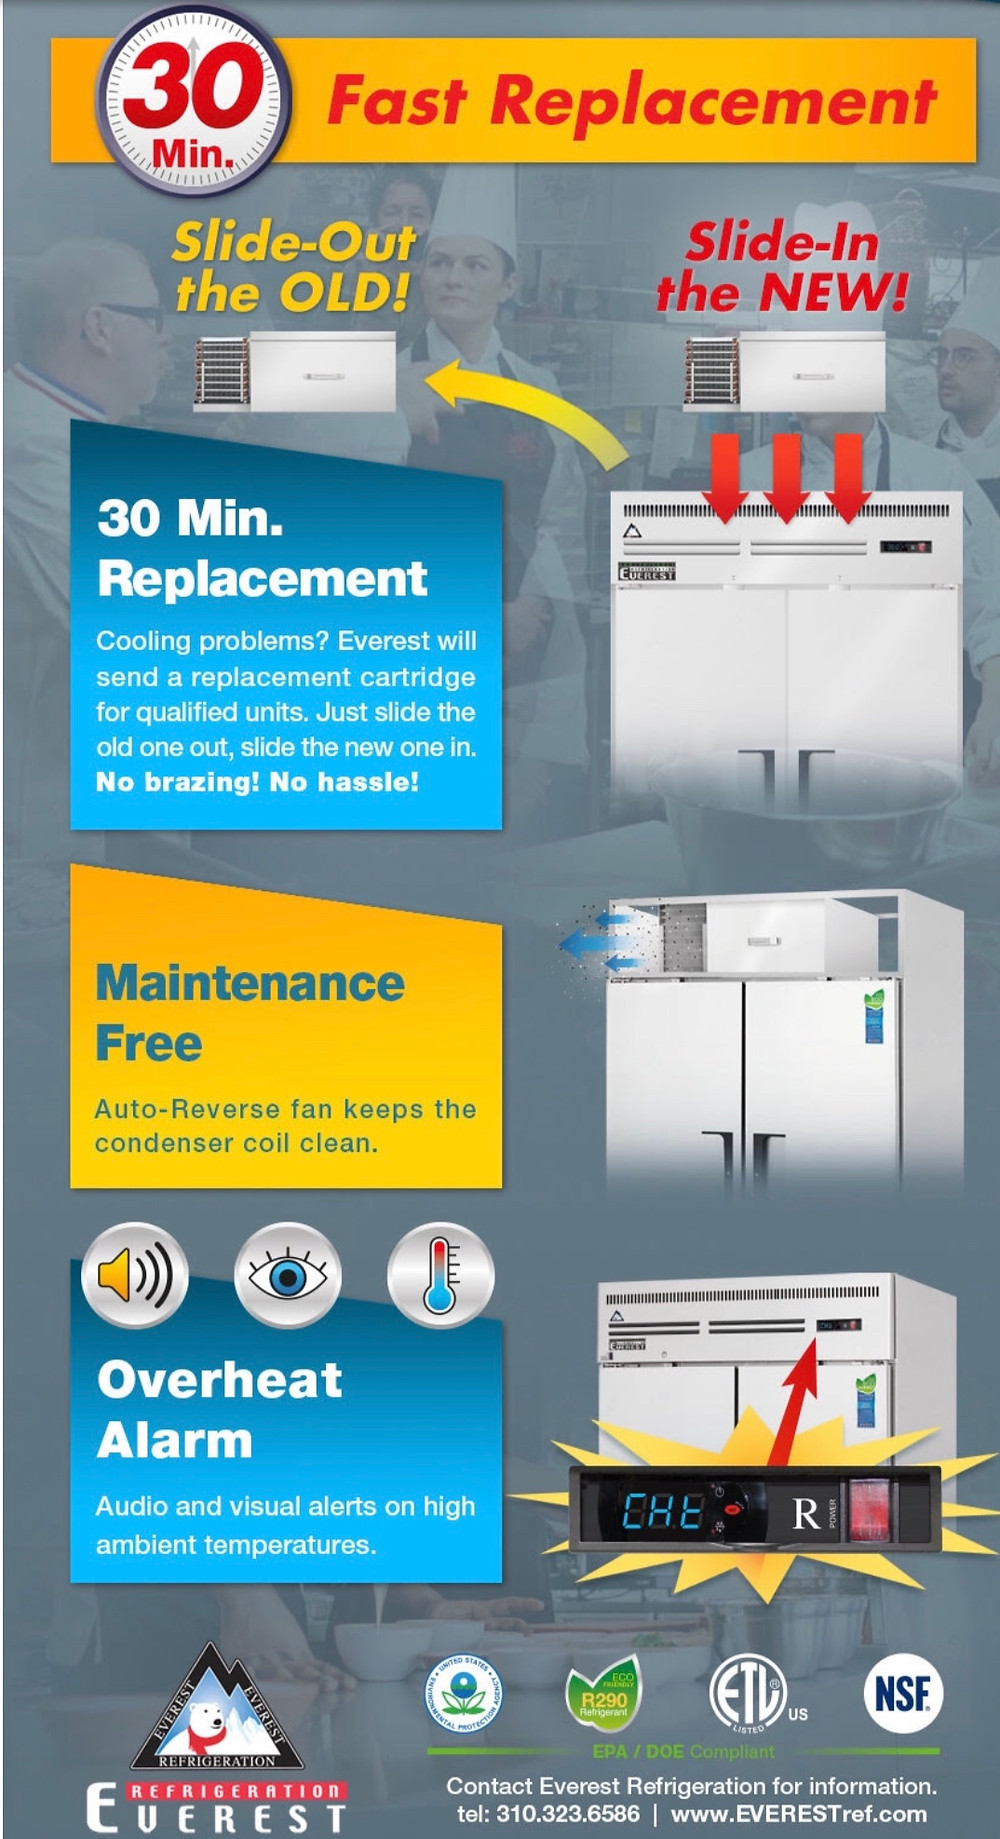 everest blizzard slide-out refrigeration system makes warranty replacement quick & less expensive